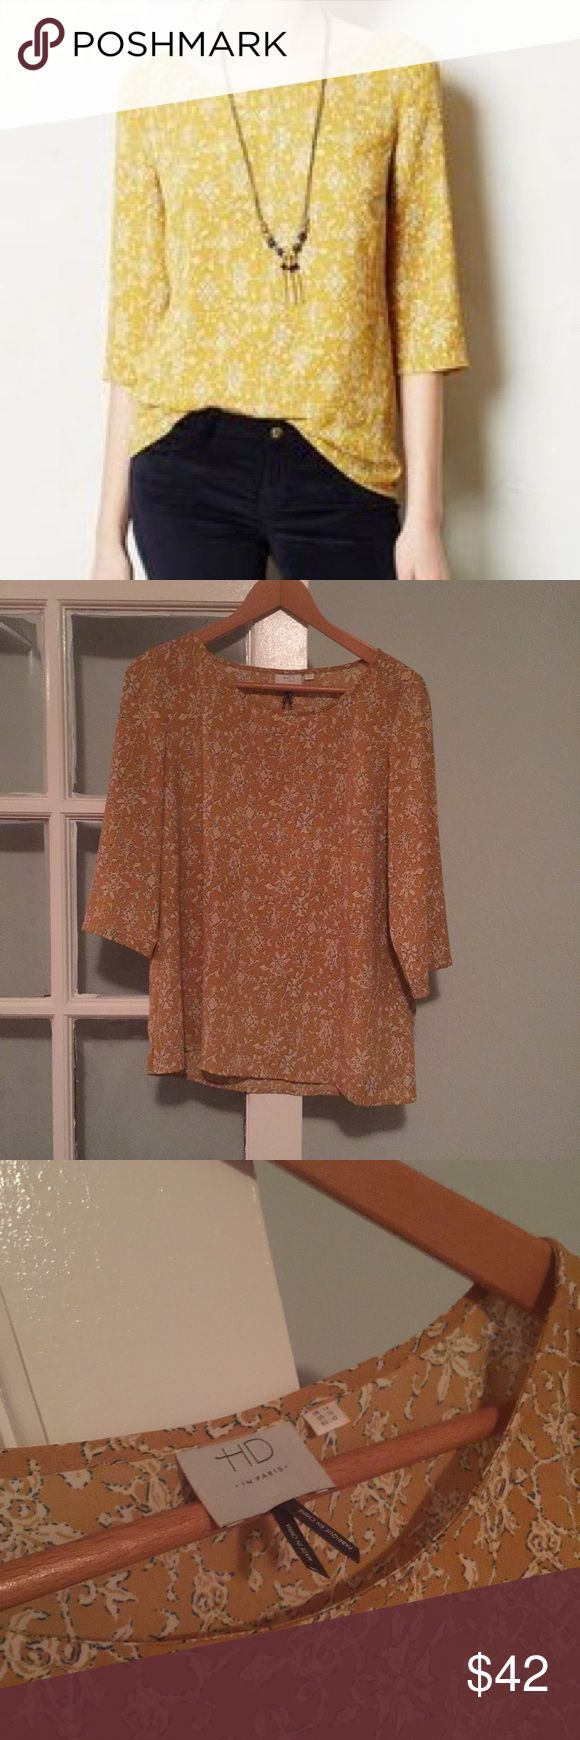 Anthropologie brand HD in Paris Blouse Anthropologie brand HD in Paris Blouse size 10 M/L in good used condition no stains holes and minimal wear Anthropologie Tops Blouses